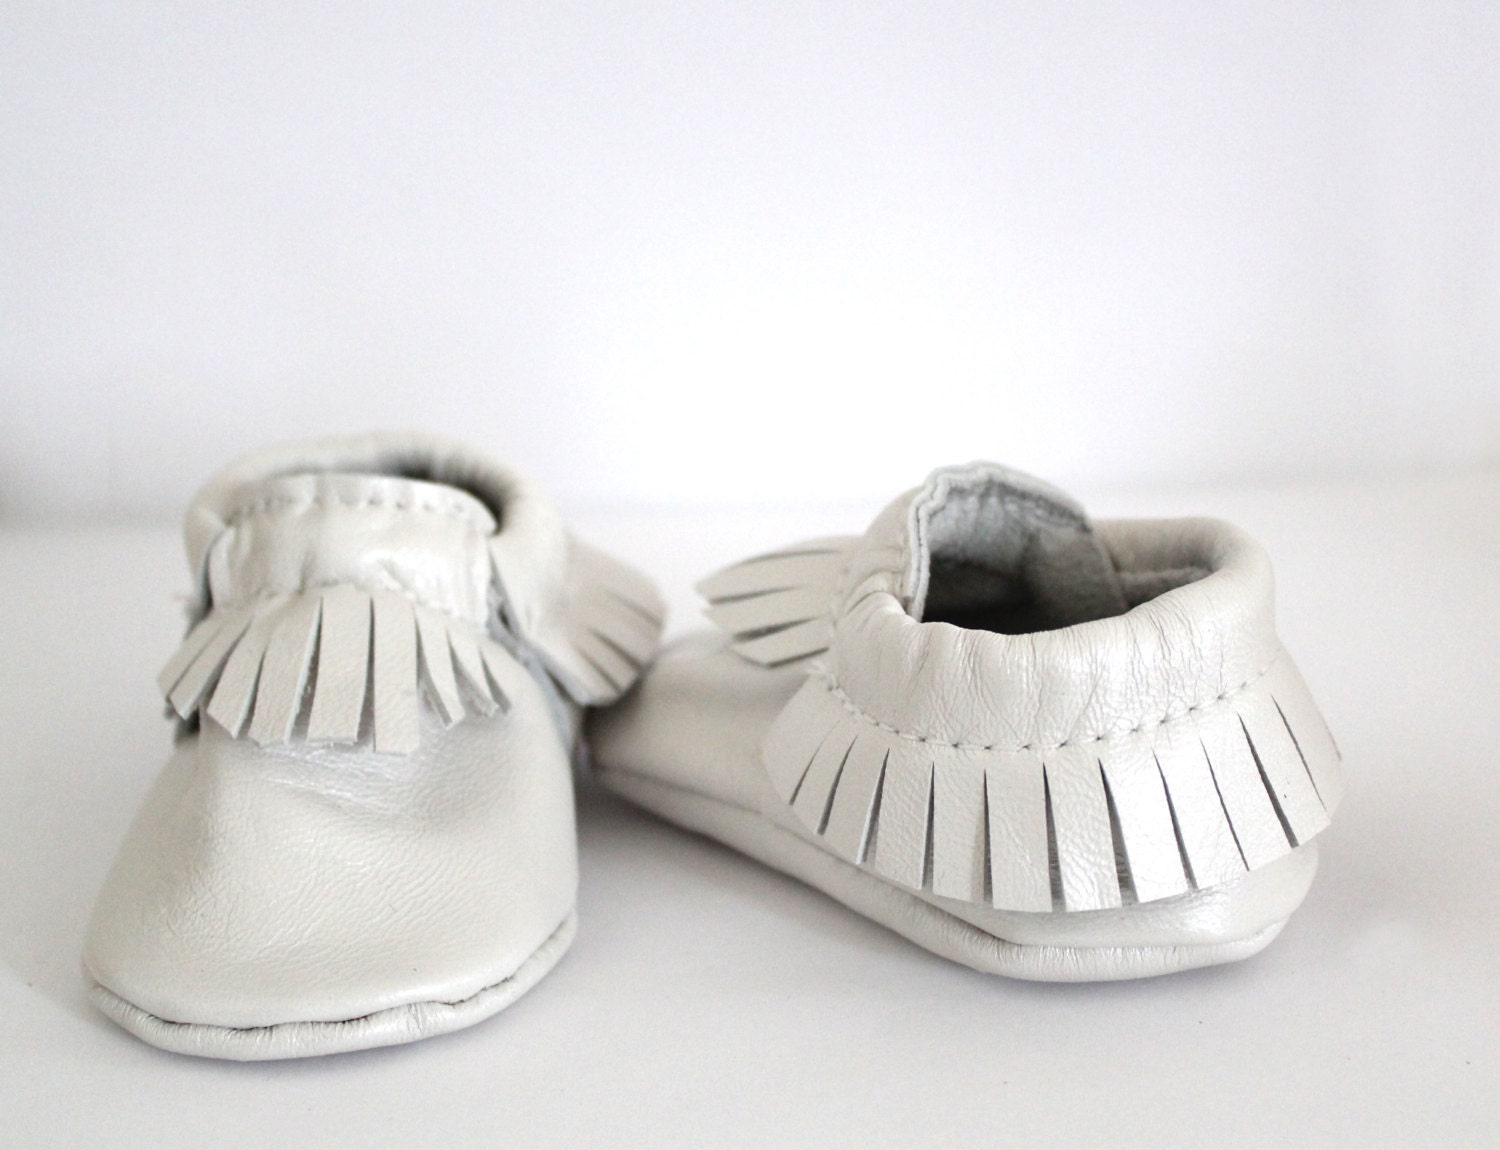 Pearl white leather baby moccasins